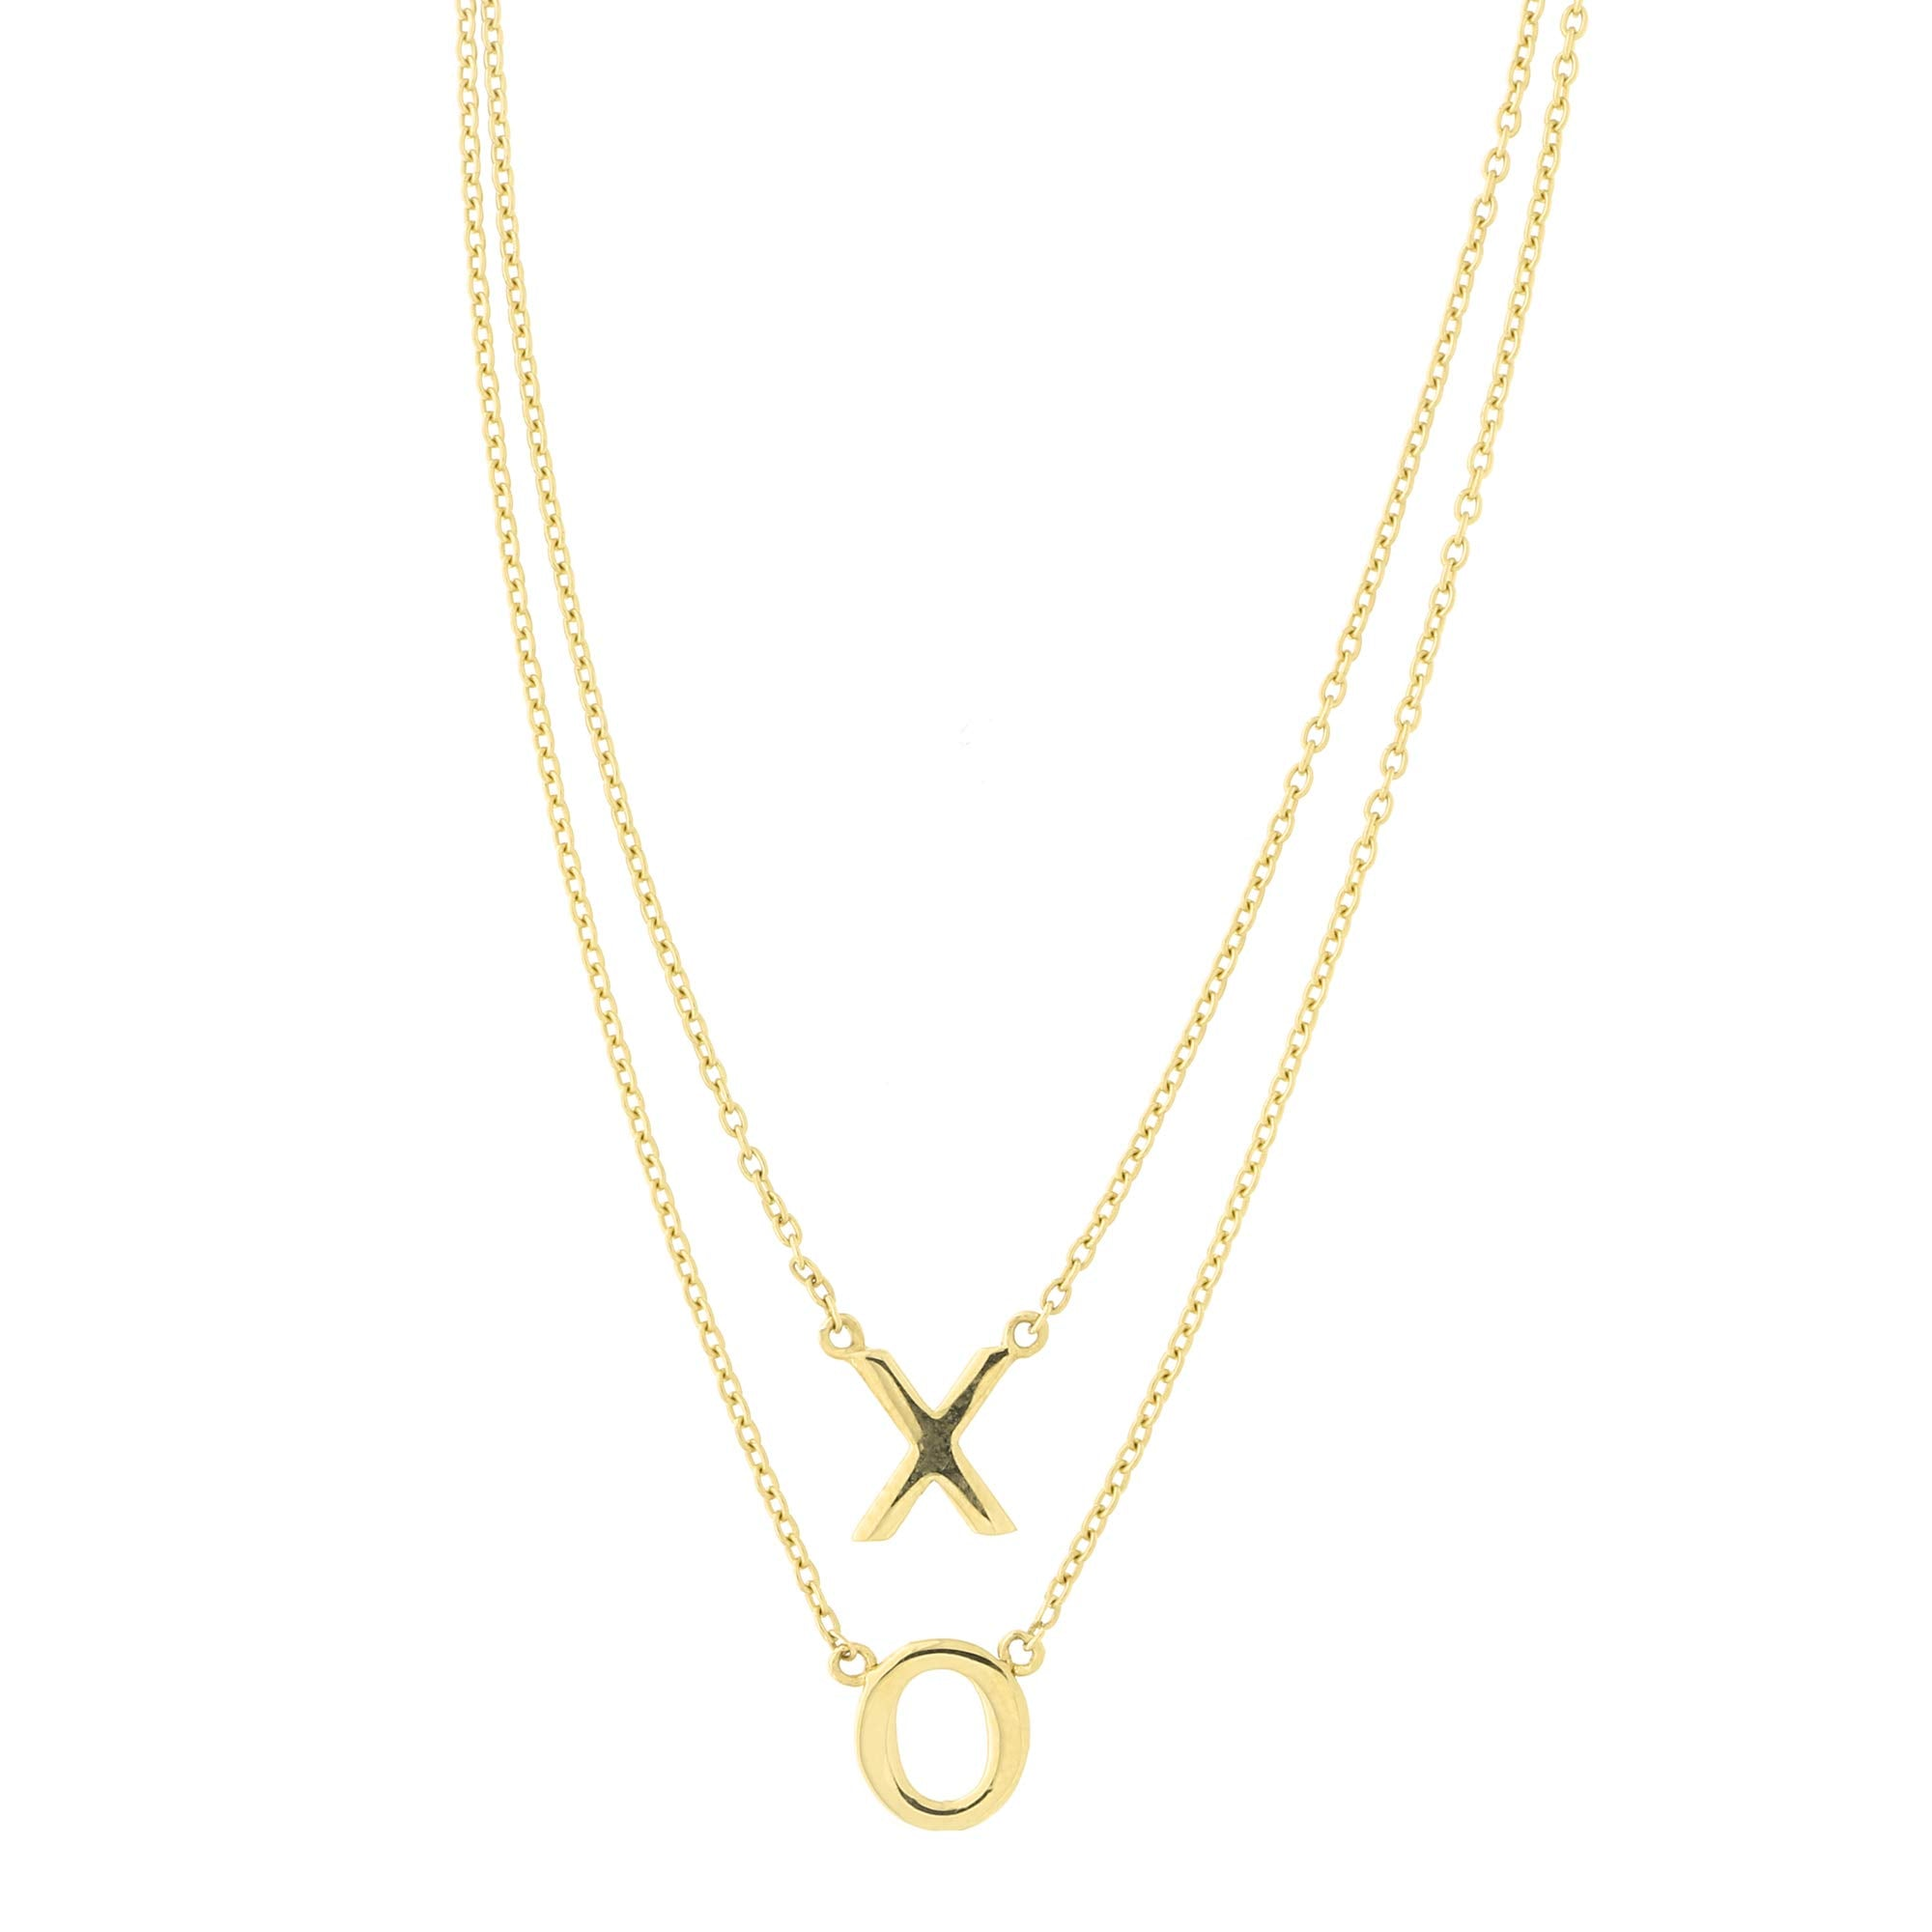 572ba9b504321 14k Yellow Gold X and O Double Layer Pendant Necklace, 17